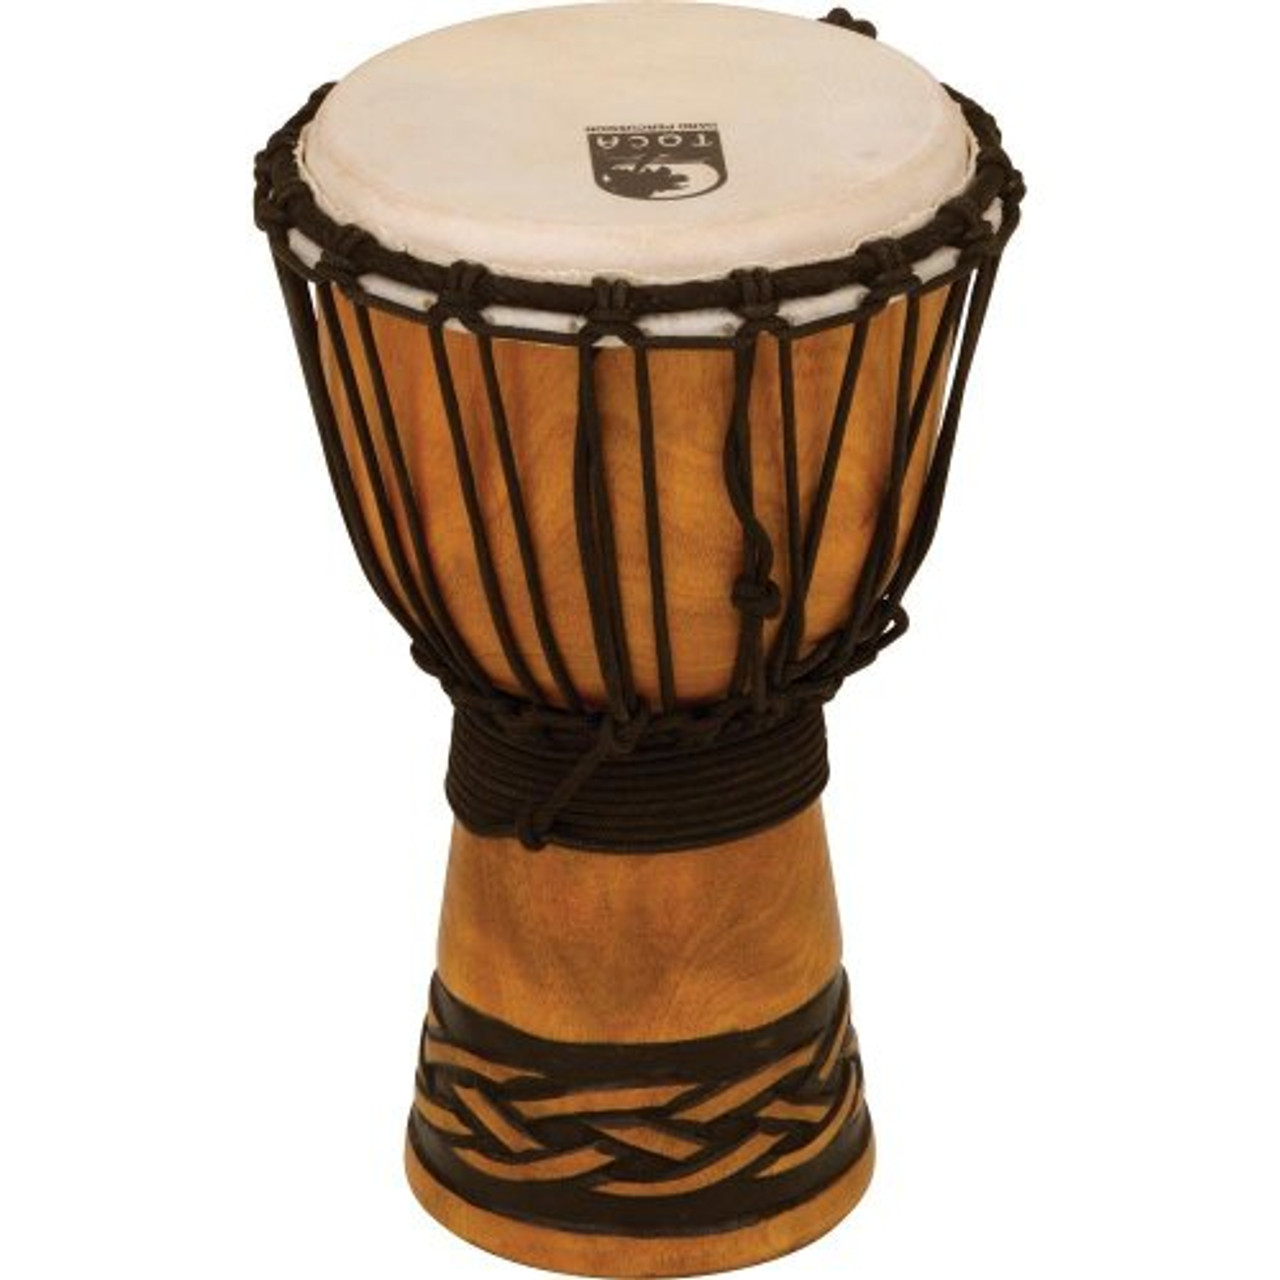 Toca a TODJ-7CK Origins Series Rope Tuned Wood 7-Inch Djembe - Celtic Knot Finish